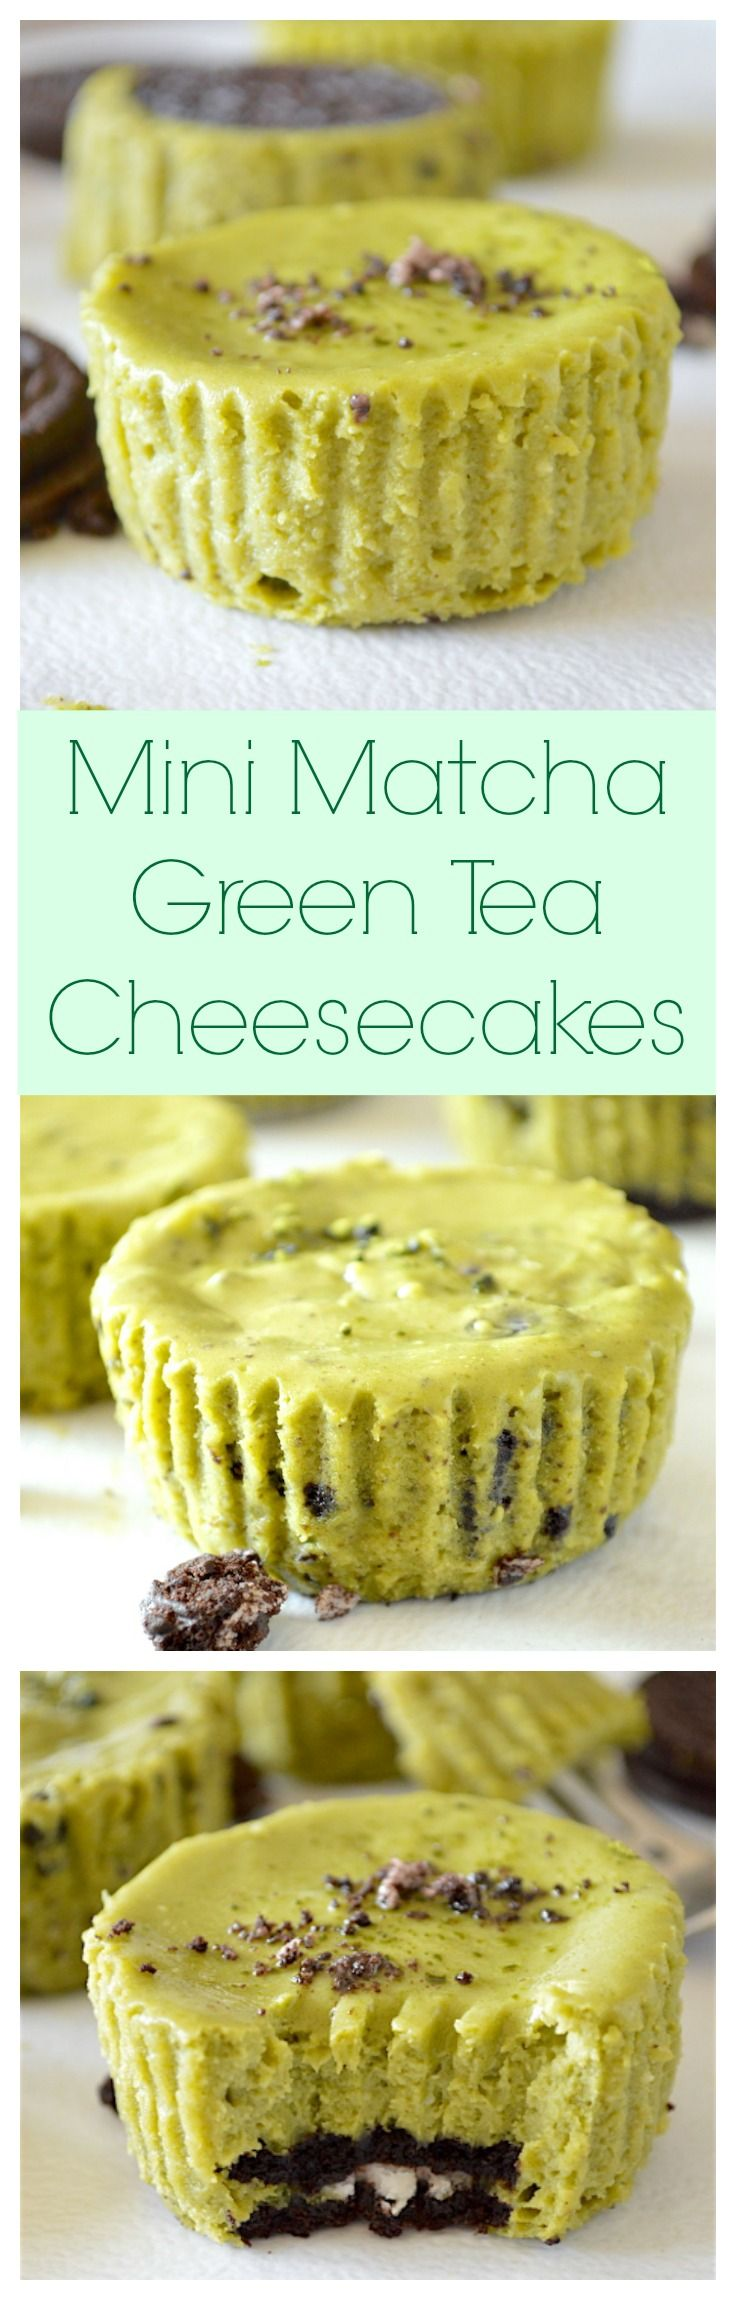 Creamy and sweet, mini matcha green tea cheesecakes with an Oreo cookie crust and packed with crushed Oreos inside!